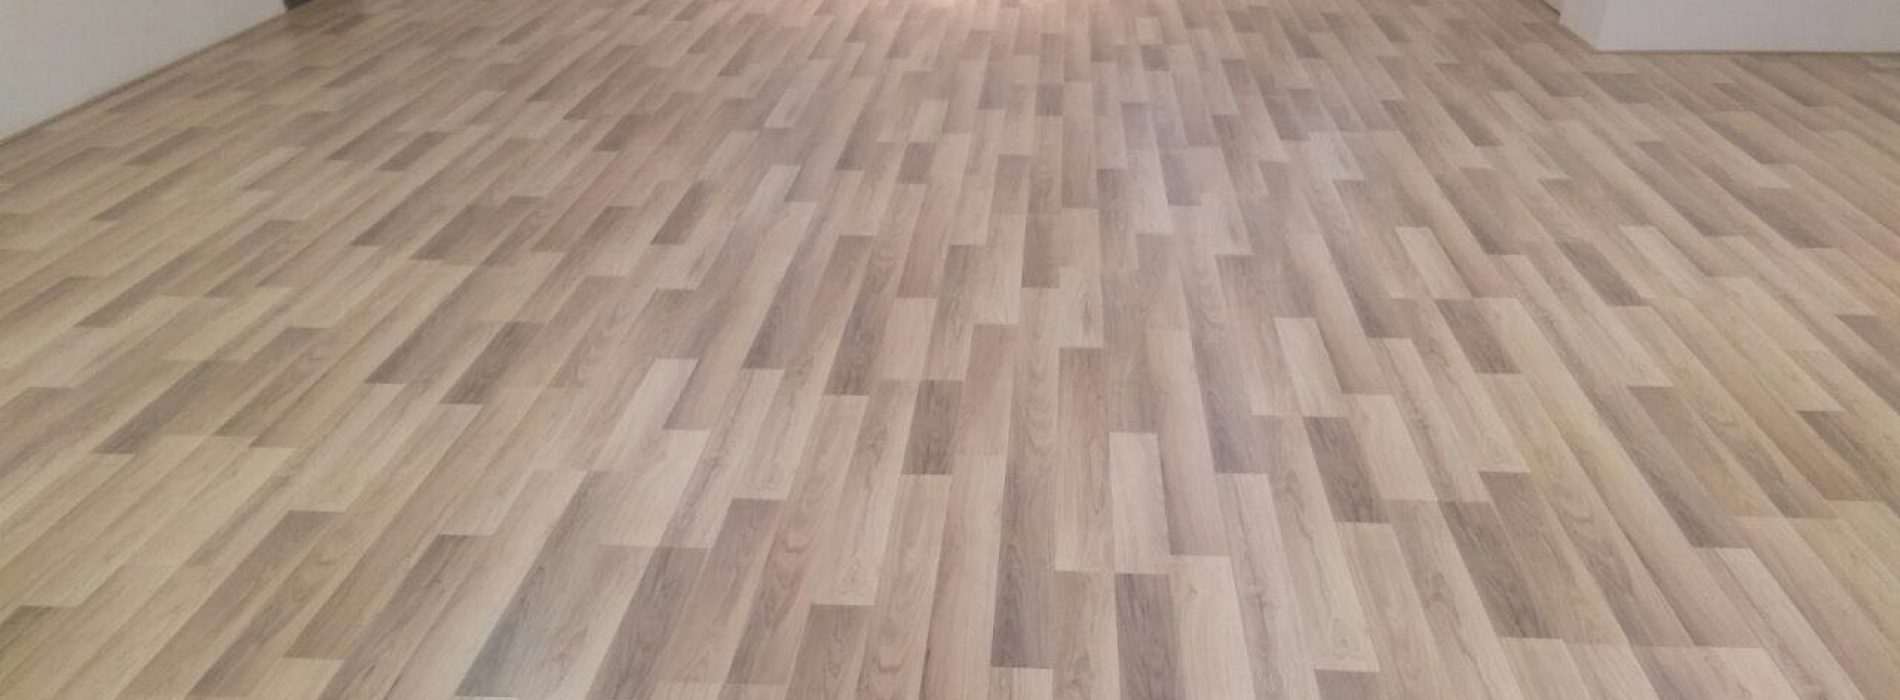 How Can Rubber Vinyl Flooring Tiles Save Your Home's Aesthetics